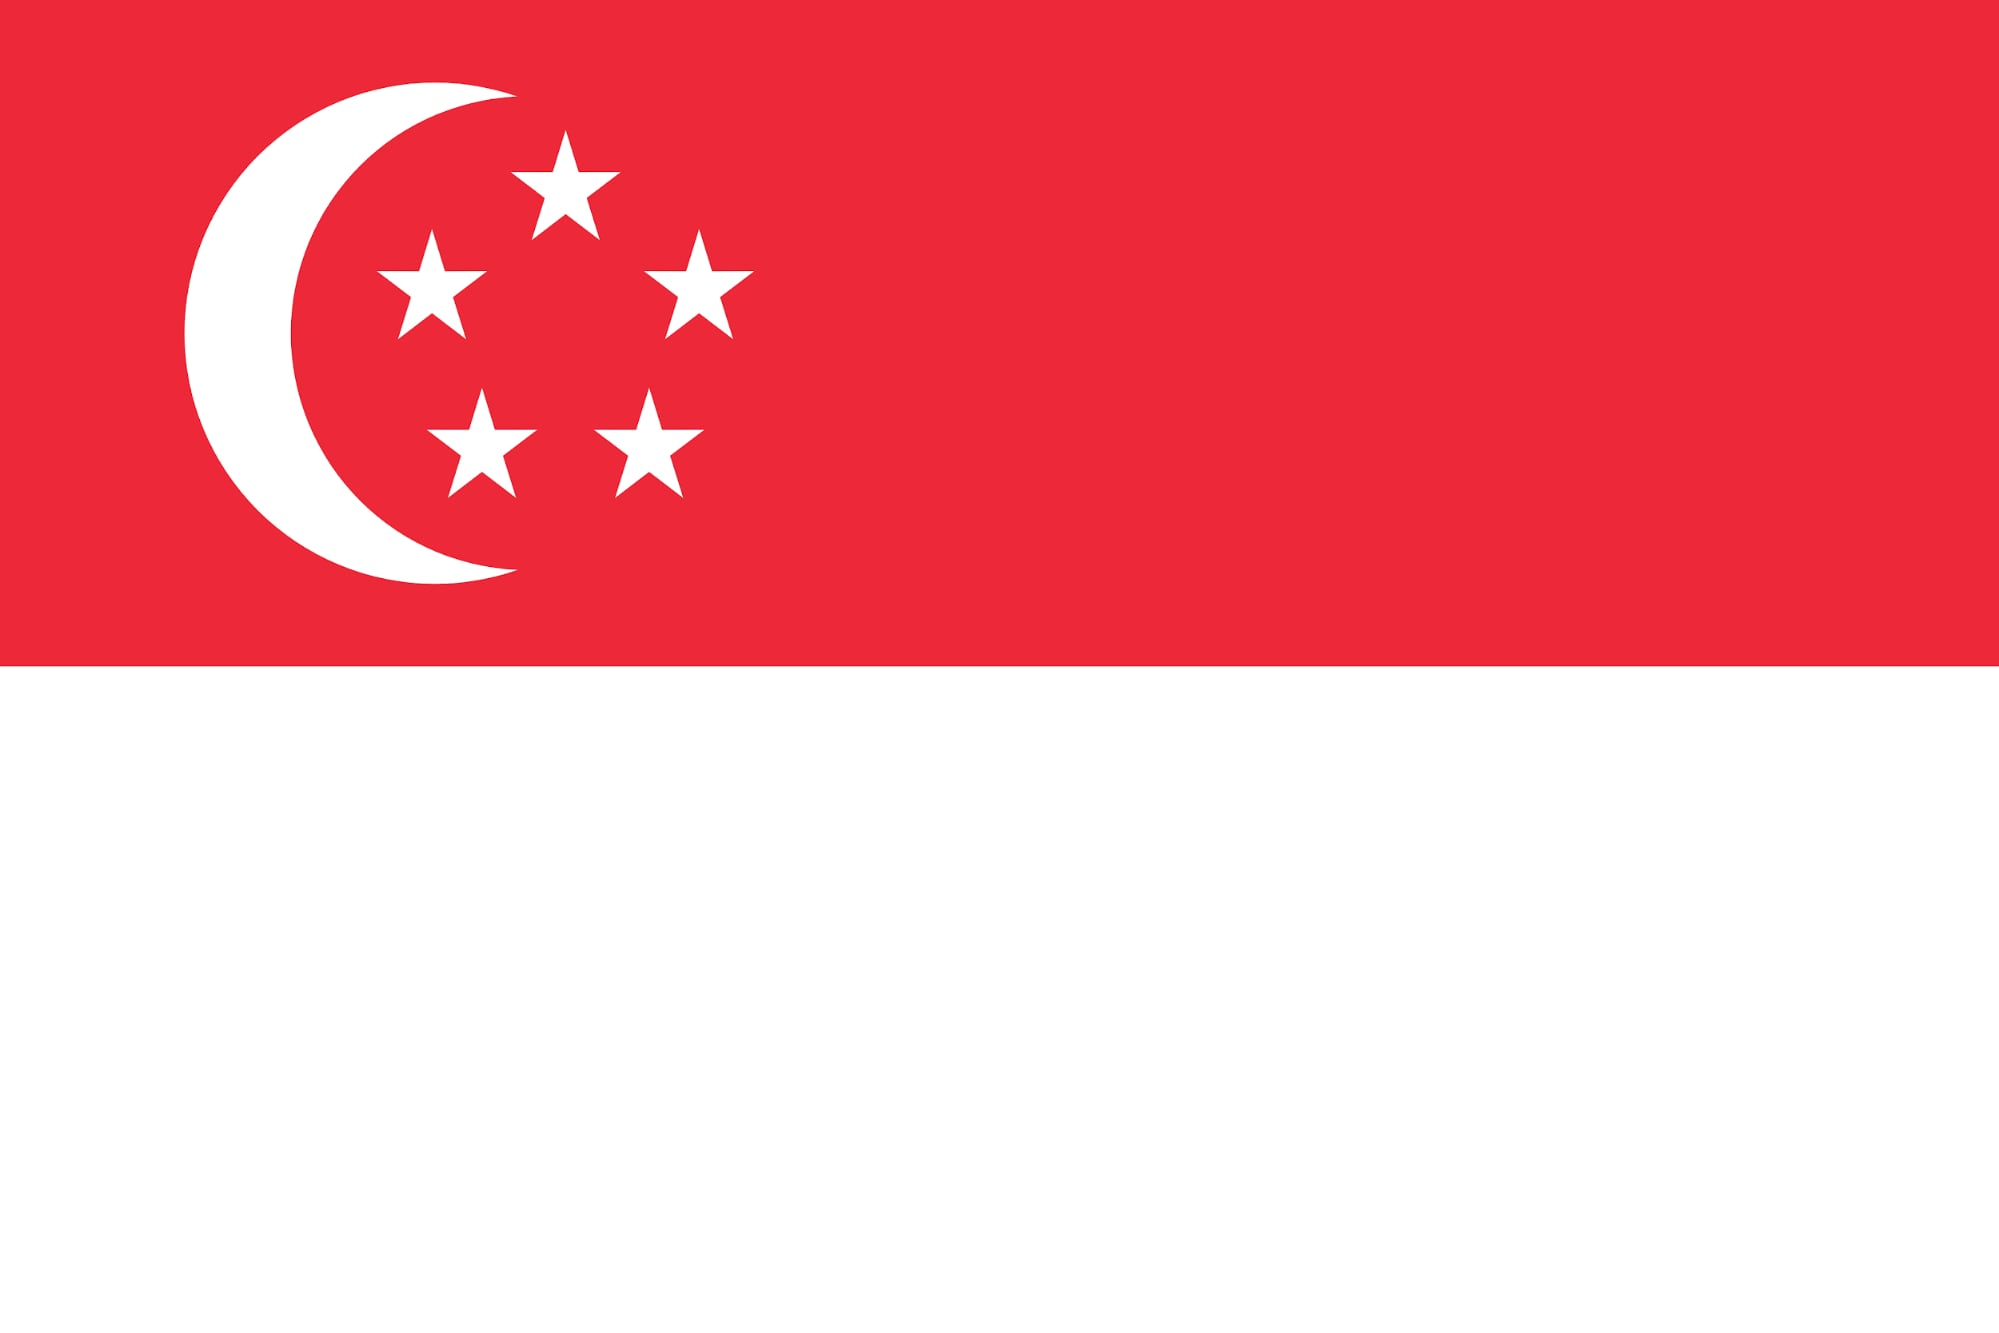 The flag of Singapore